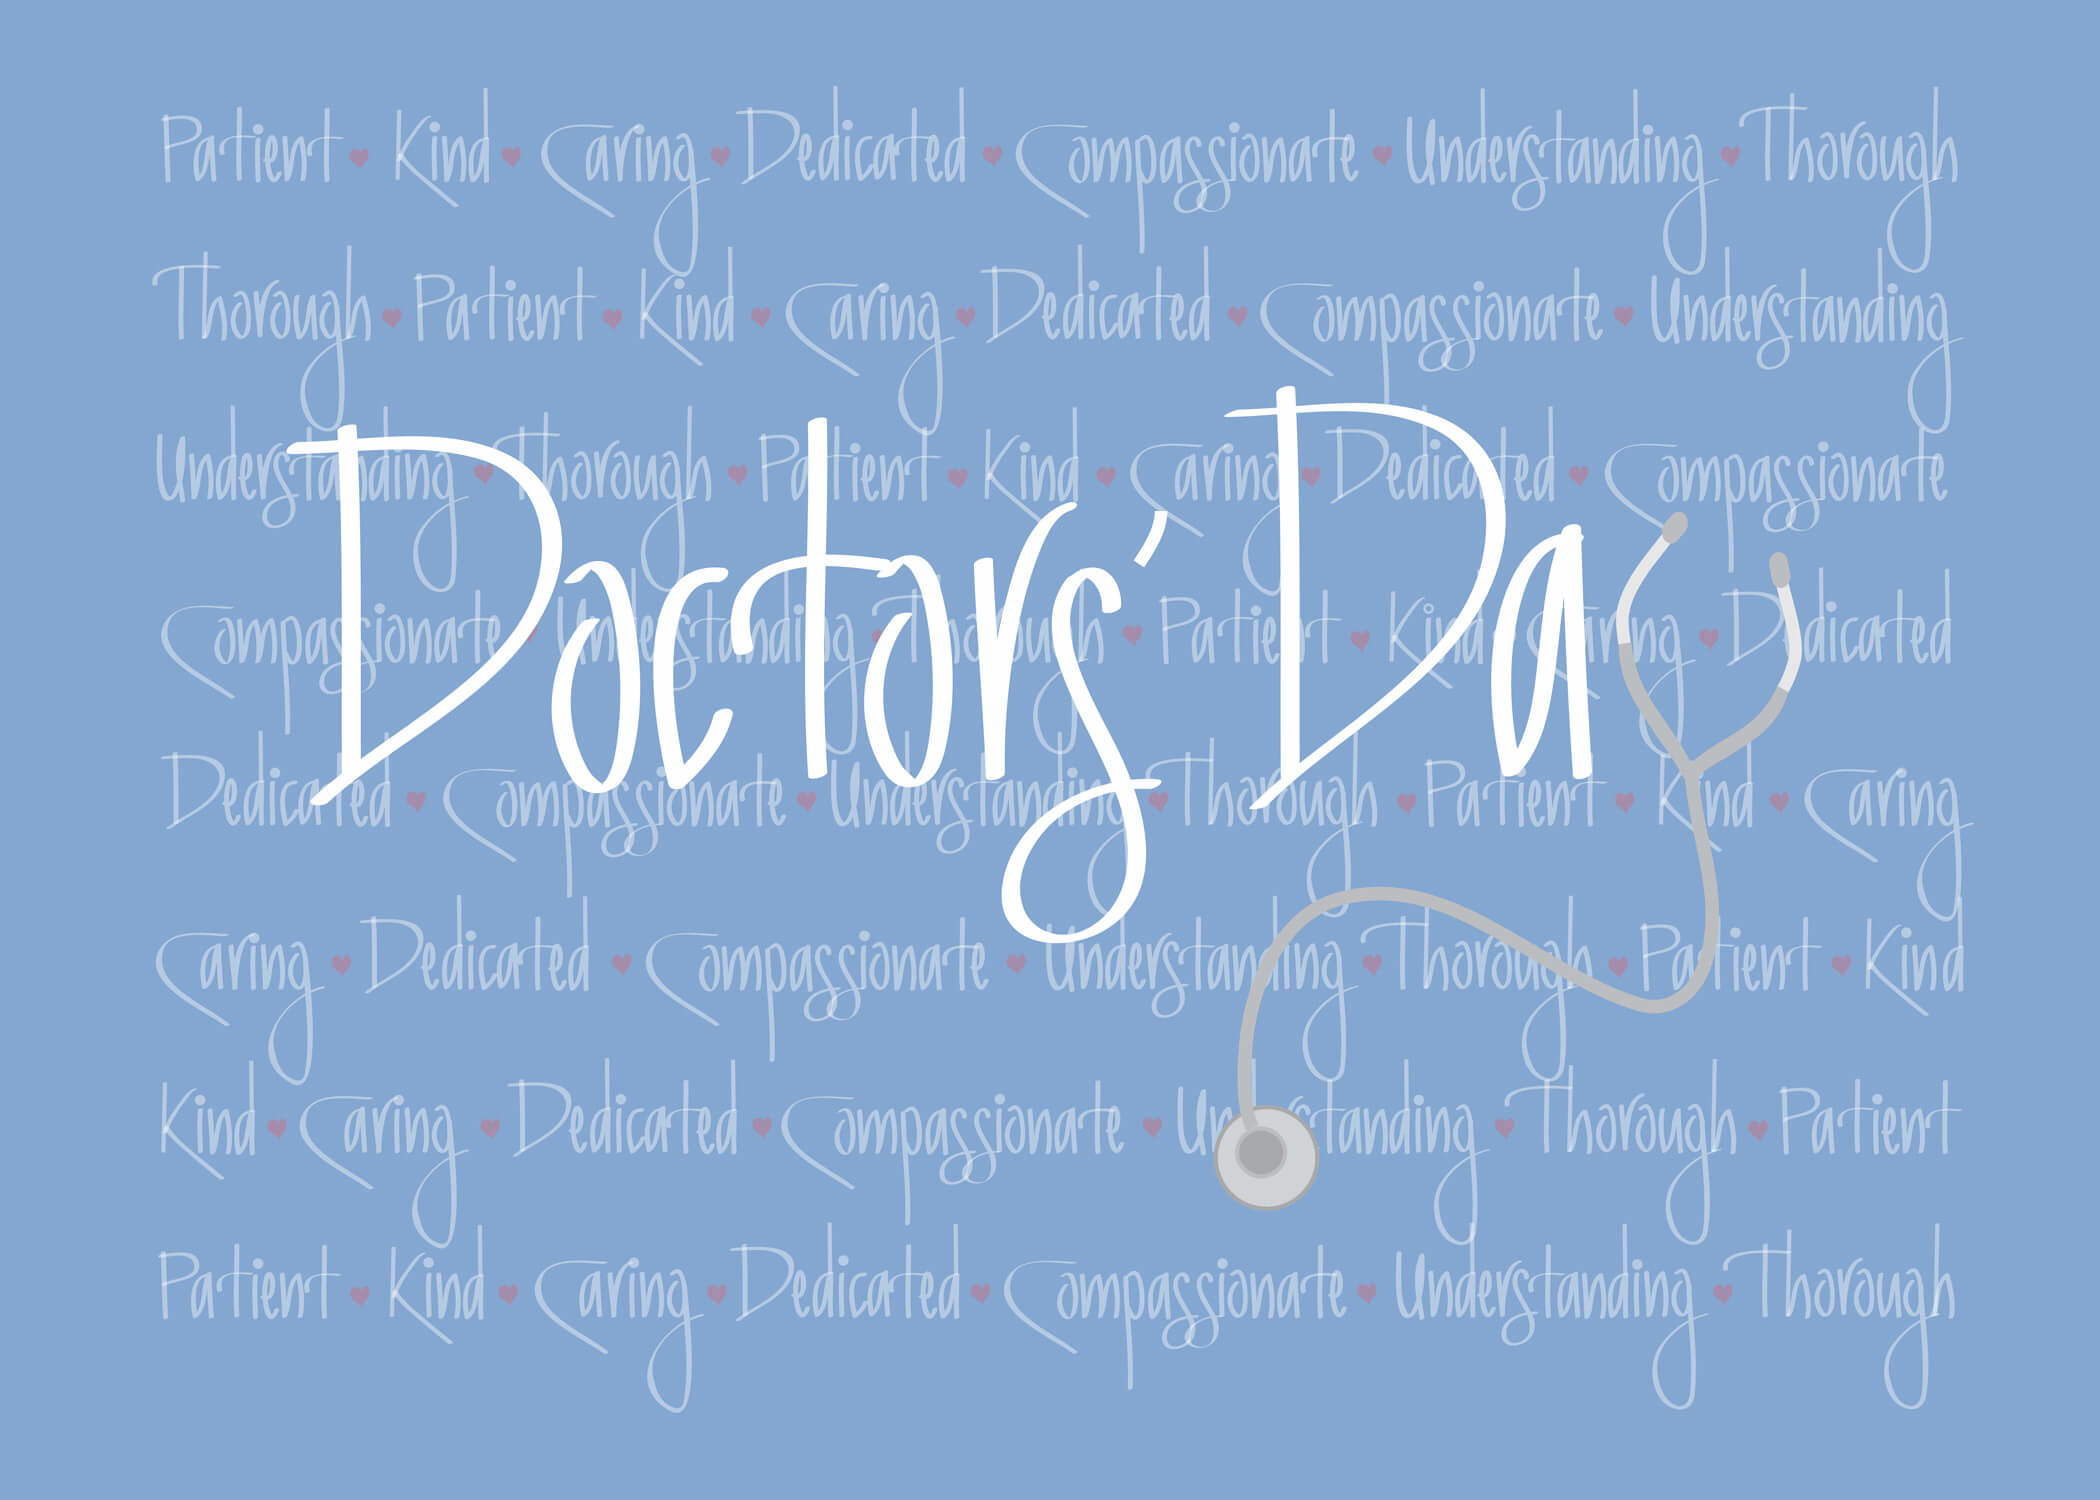 2100x1500 The 25+ best Happy doctors day images ideas on Pinterest | Tenth doctor,  Doctor who rose tyler and Donna noble